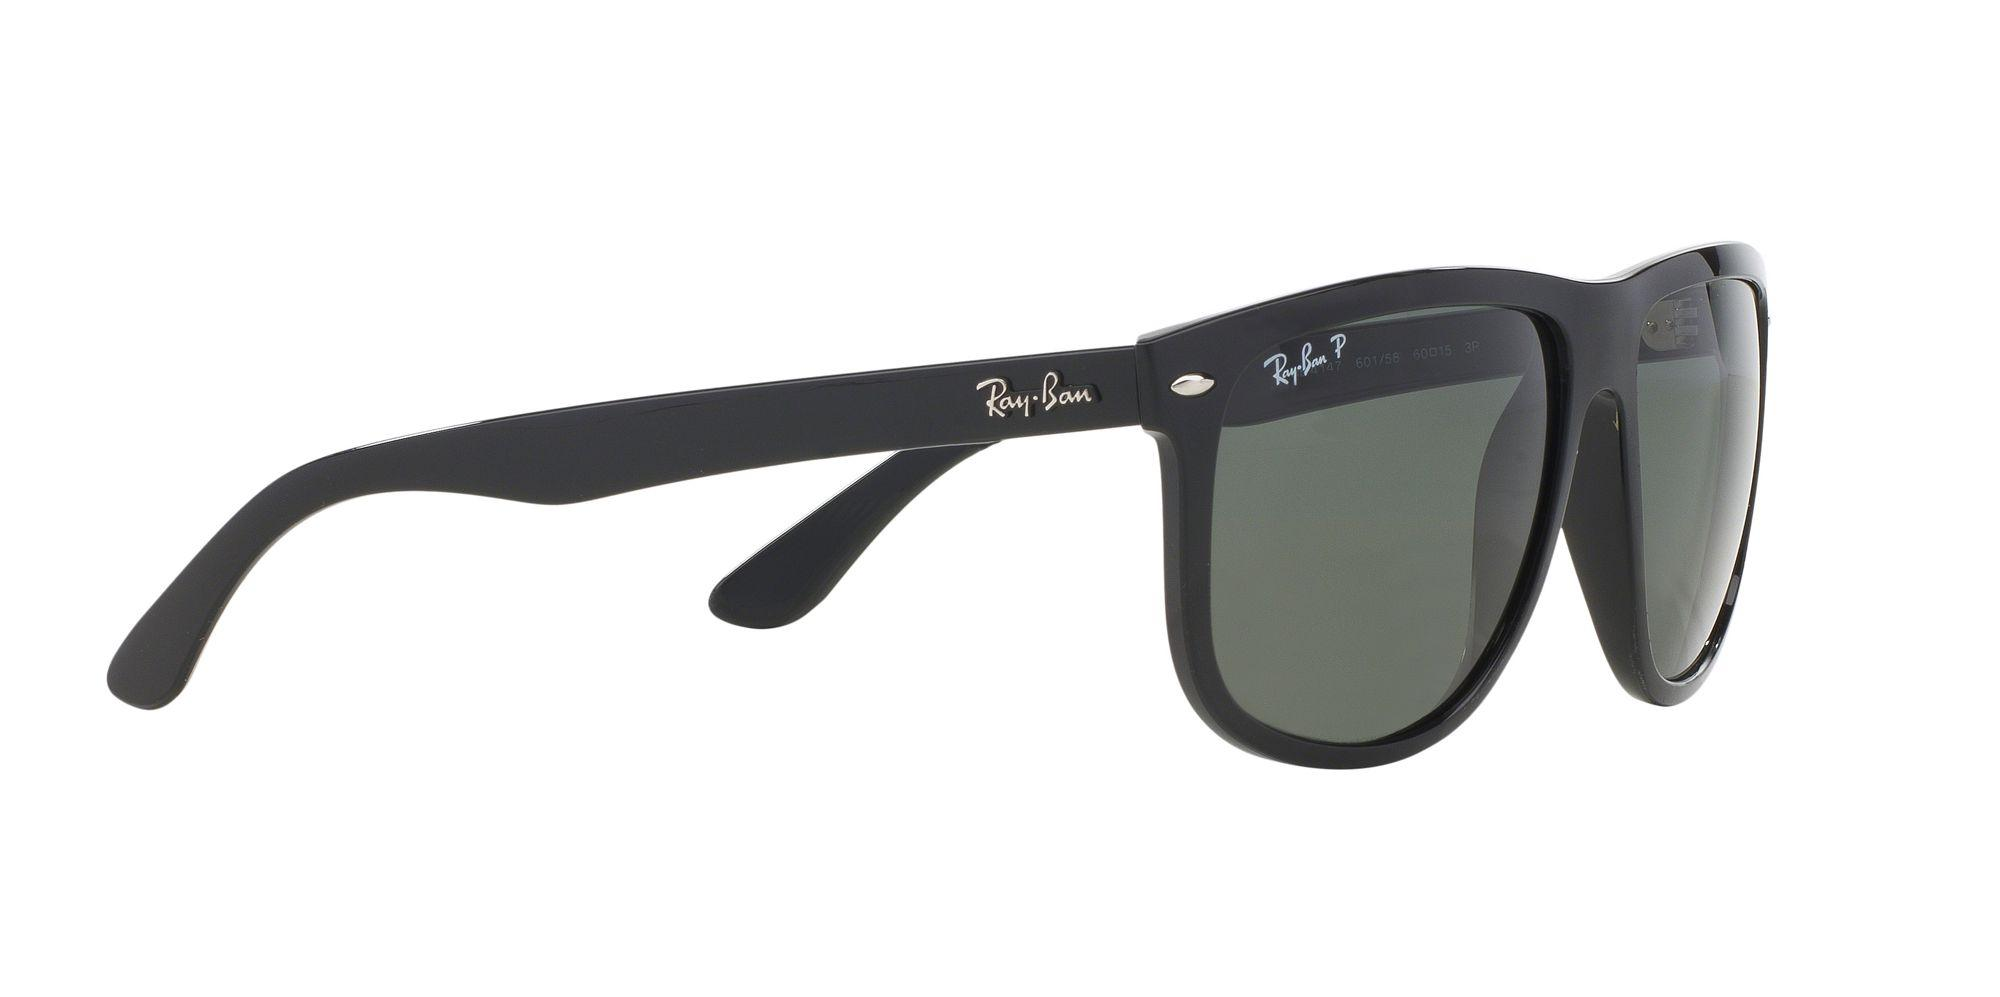 Ray-Ban Black Rb4147 Square Sunglasses in Green for Men